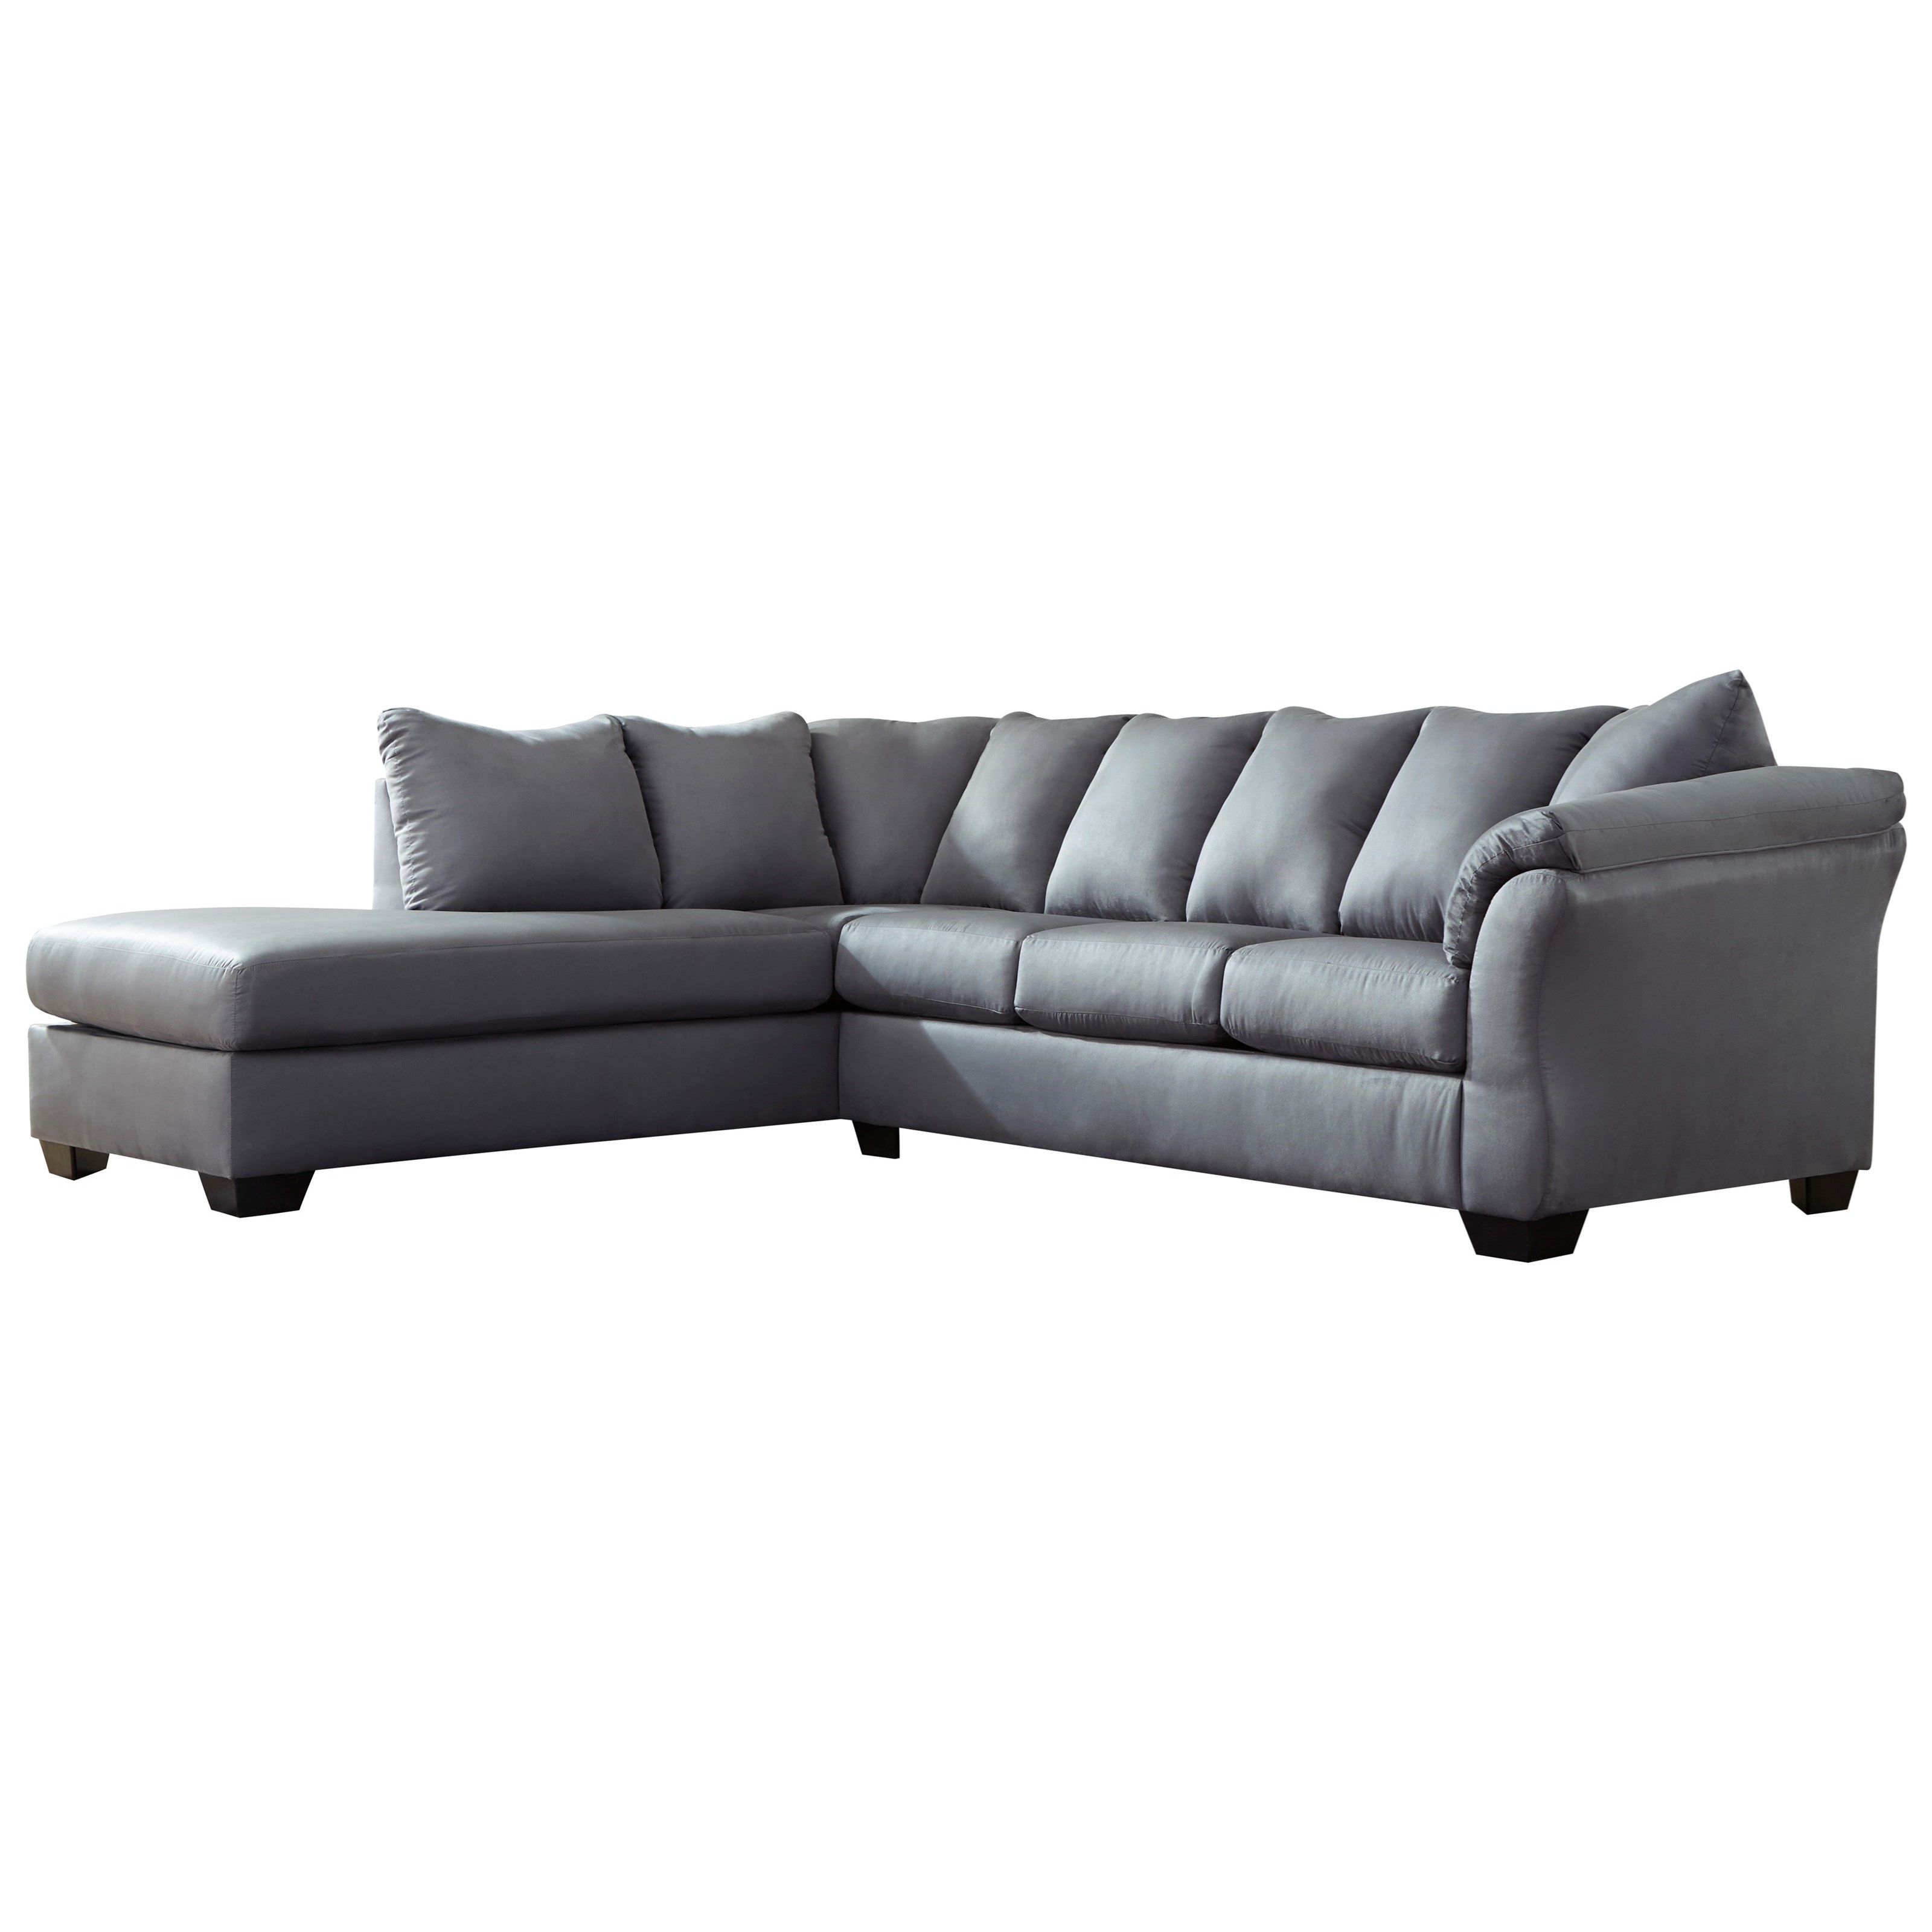 Darcy - Steel 2-Piece Sectional Sofa with Chaise by Ashley (Signature Design) at Johnny Janosik